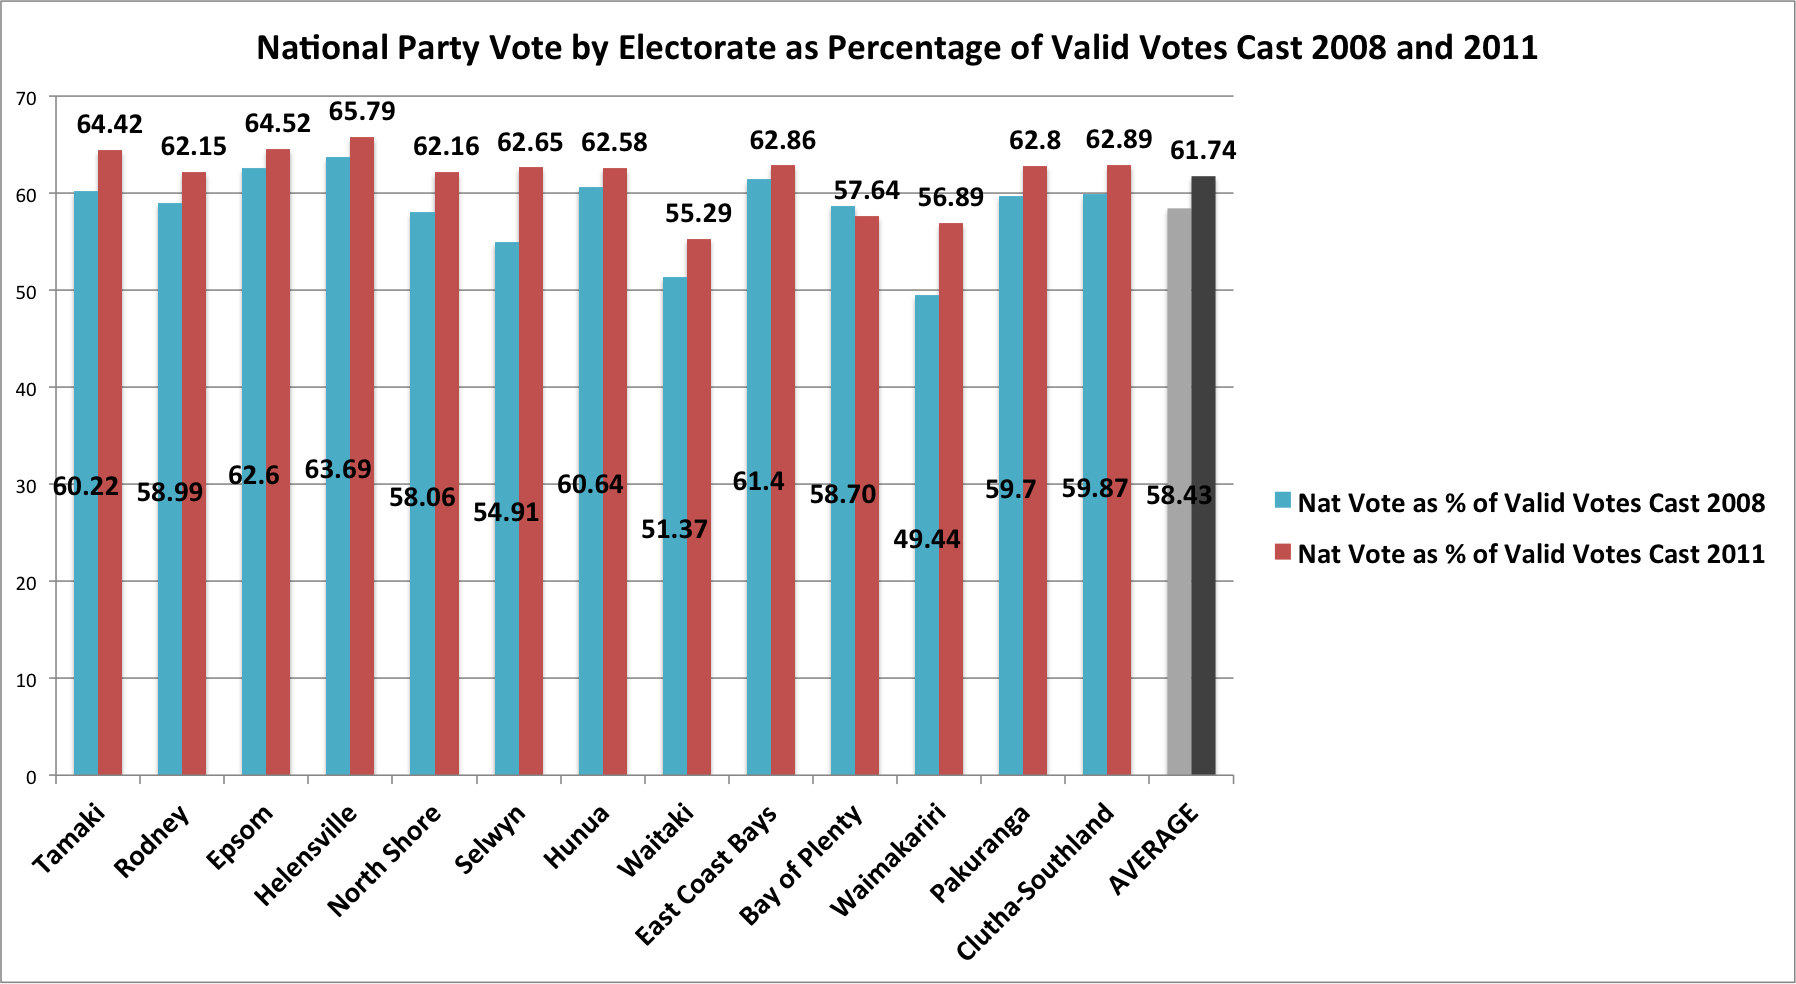 National's Vote as a Percentage of Valid Votes Cast in 2008 and 2011